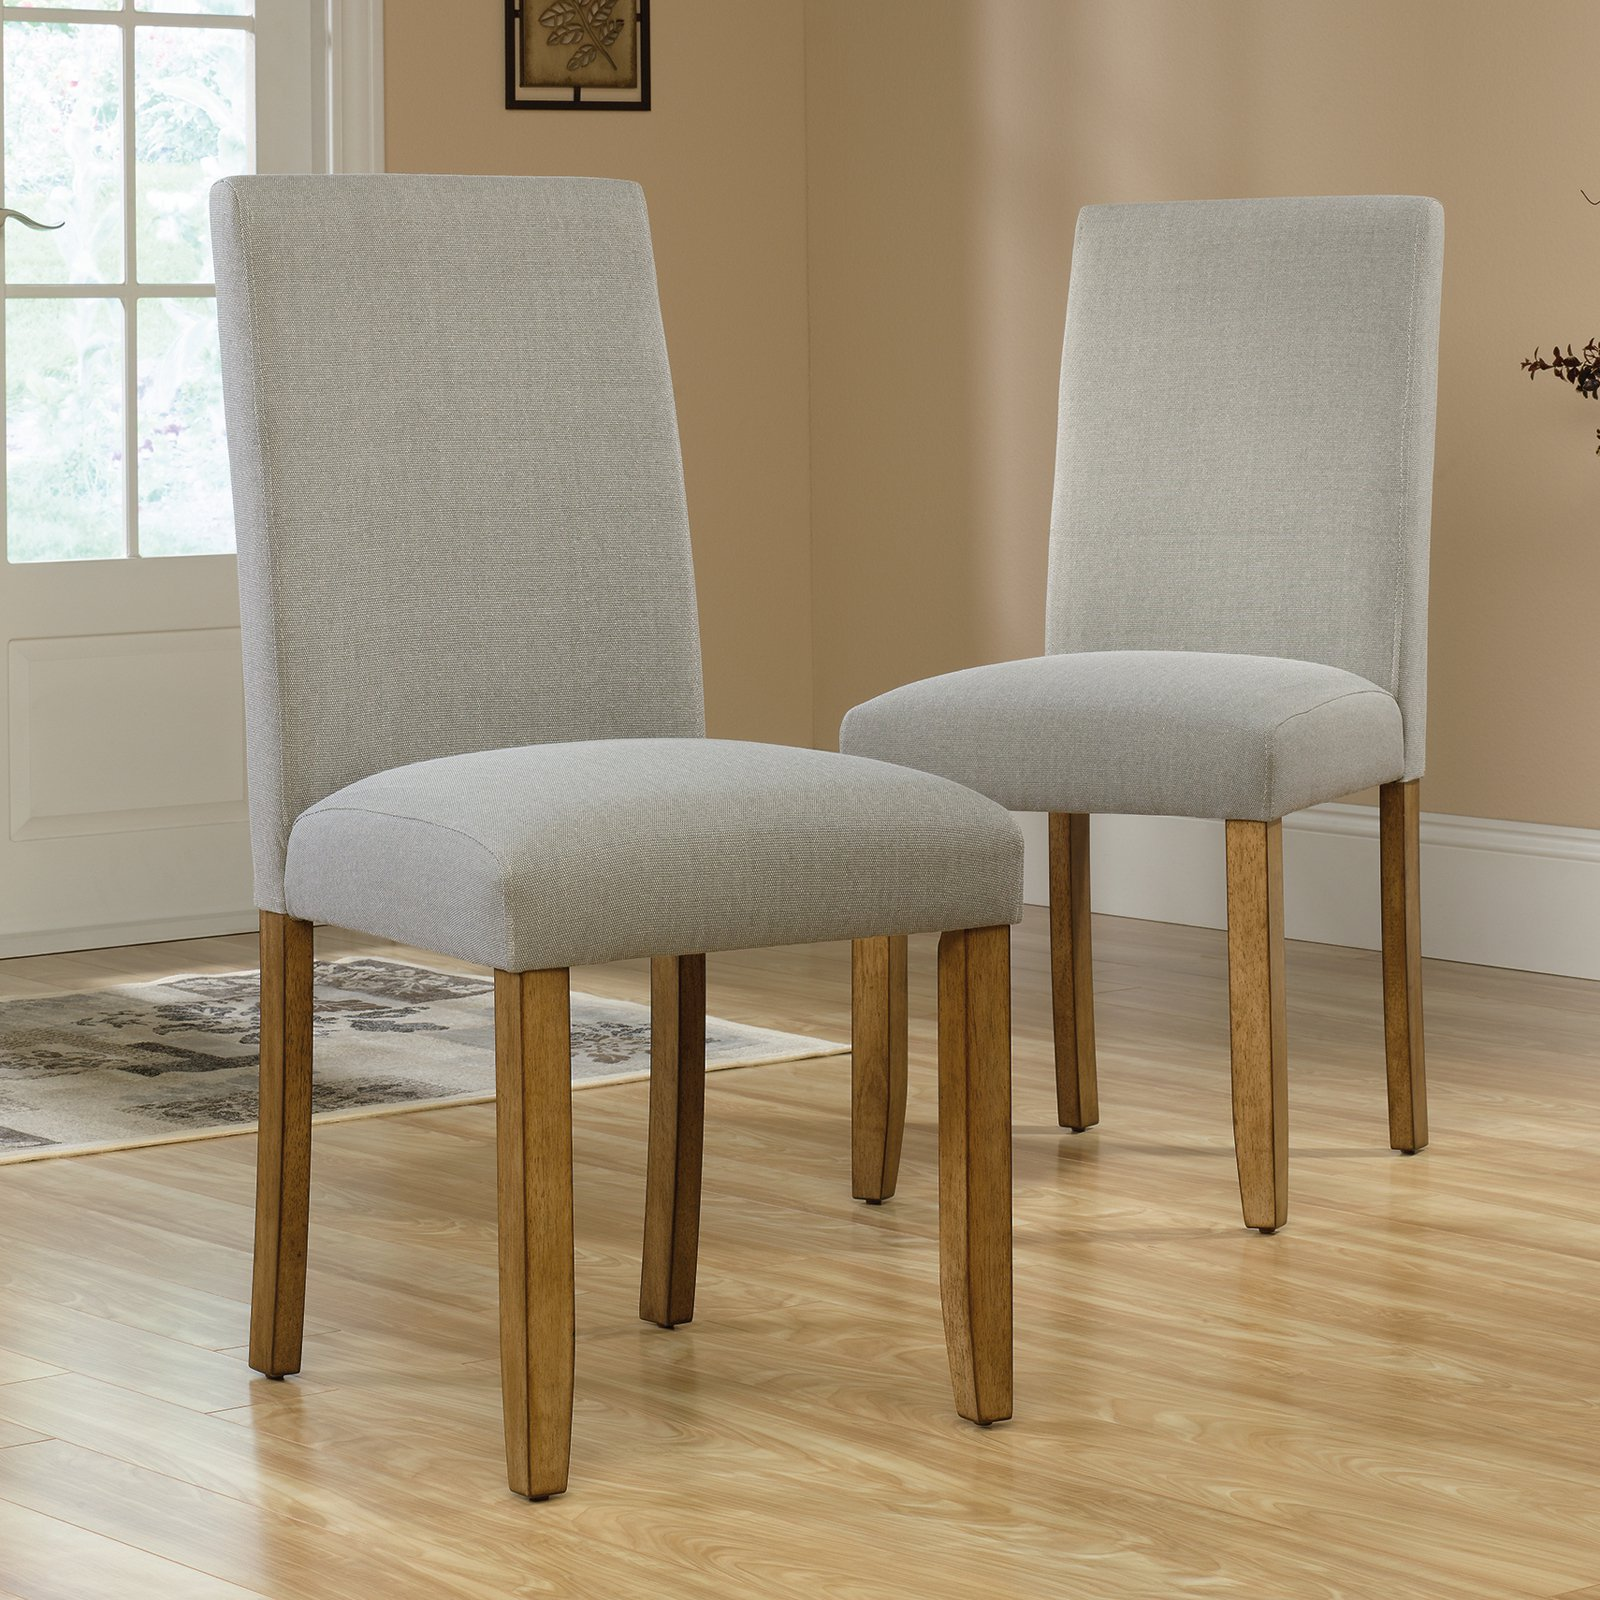 Sauder Cannery Bridge Parsons Chairs, 2 Pack, Gray Finish